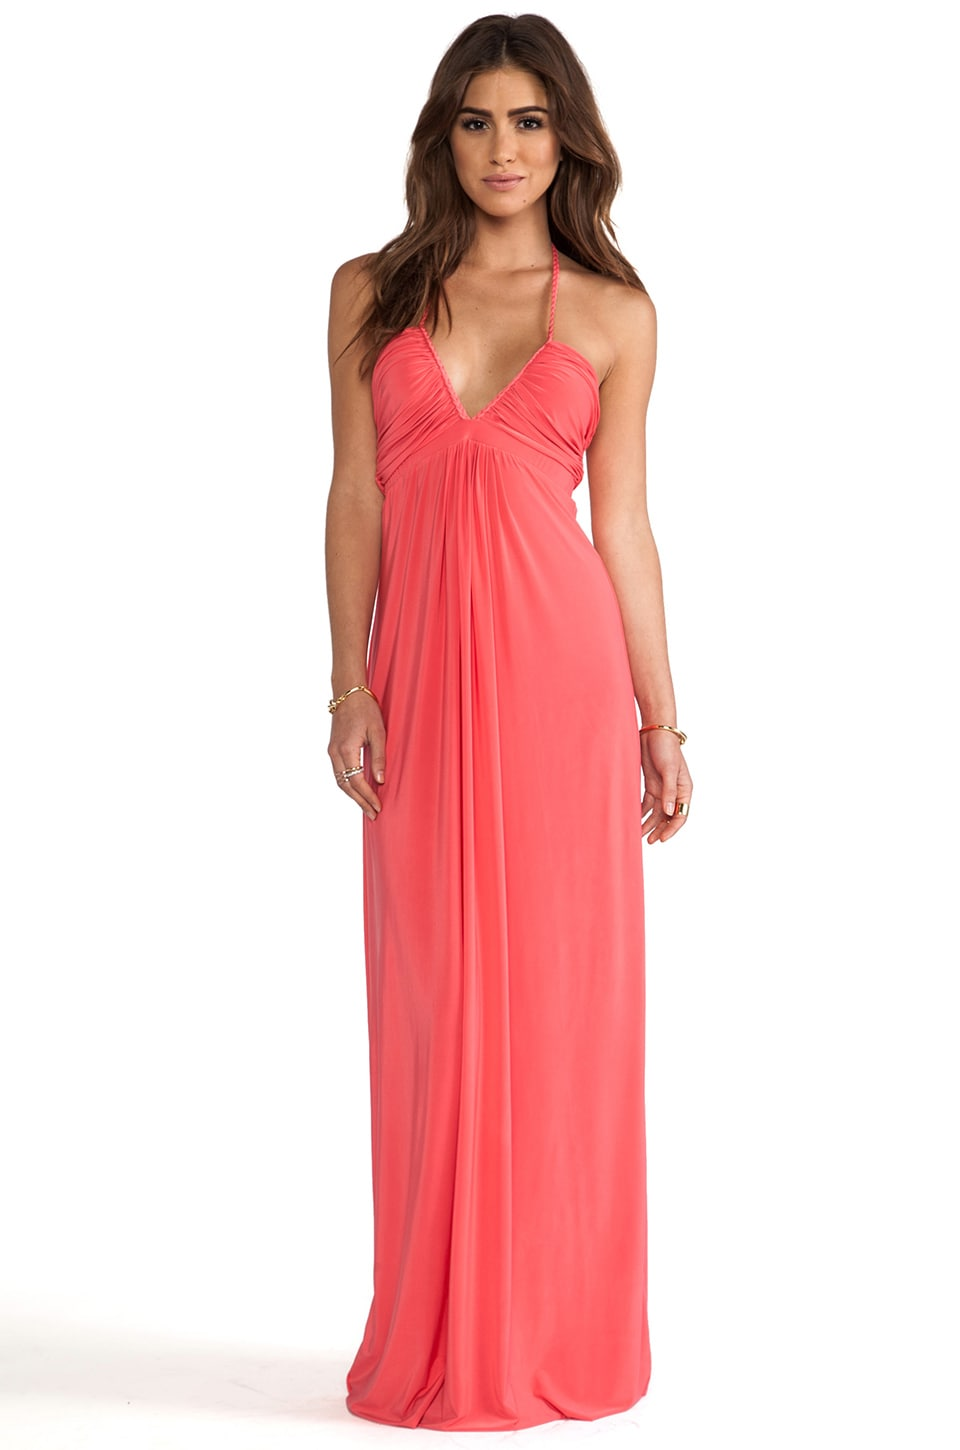 T-Bags LosAngeles Maxi Halter Dress in Coral